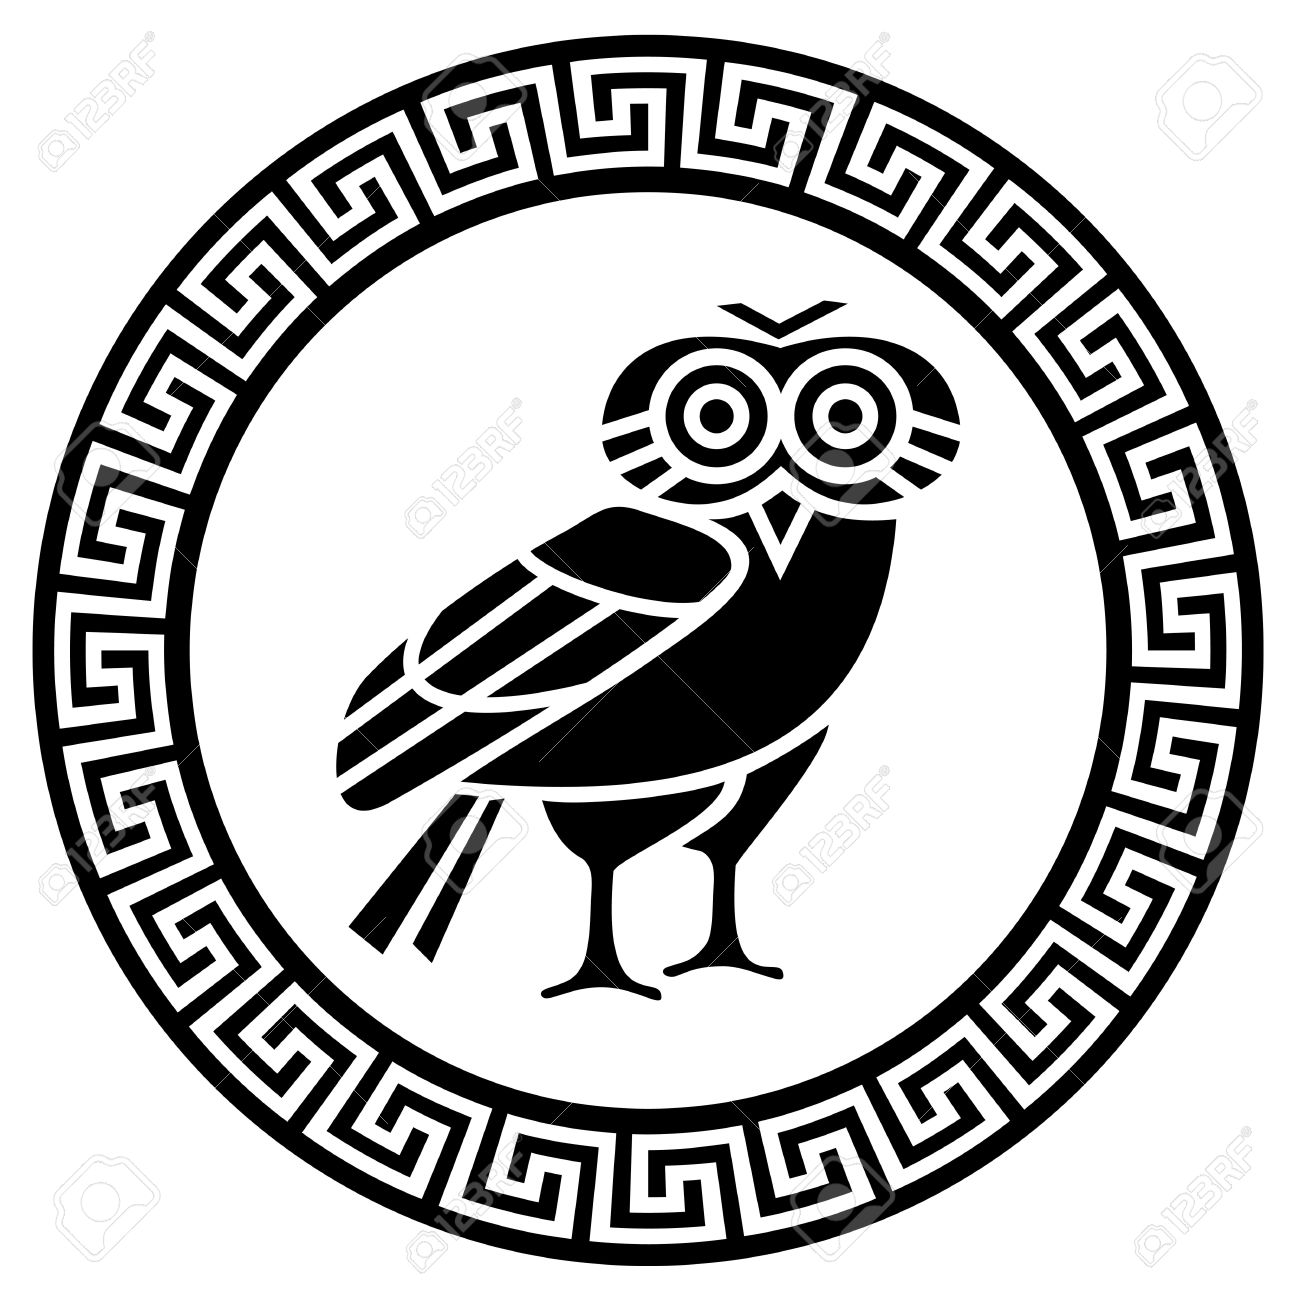 Round Greek Meander And Owl Silhouette Royalty Free Cliparts.